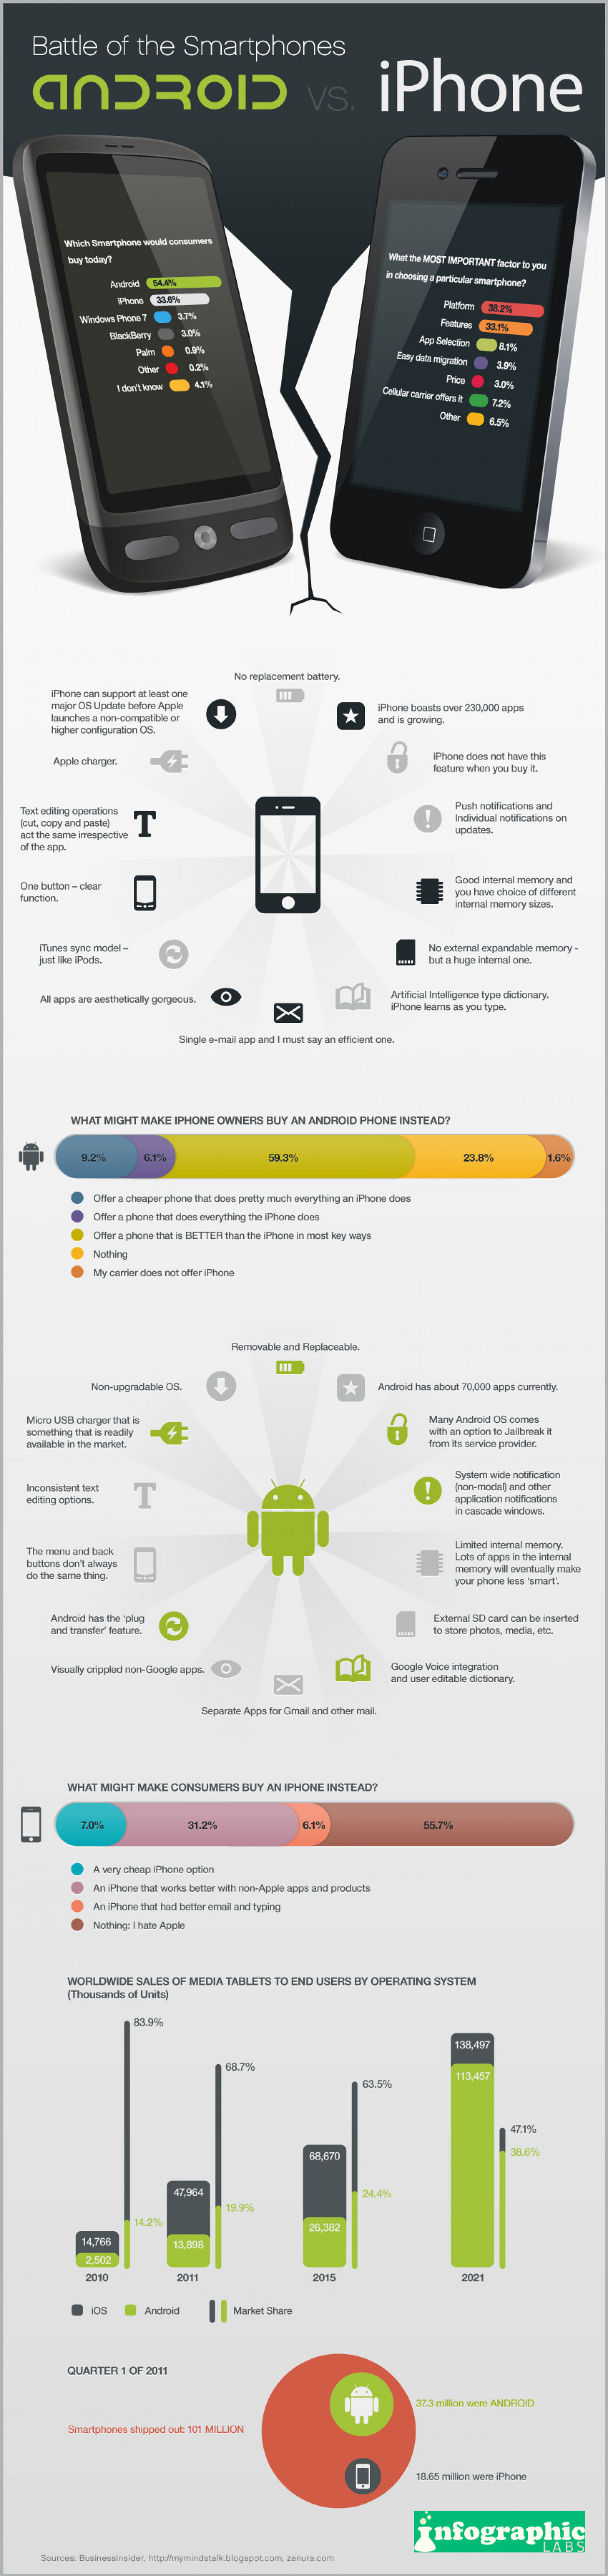 Android vs iPhone Infographic